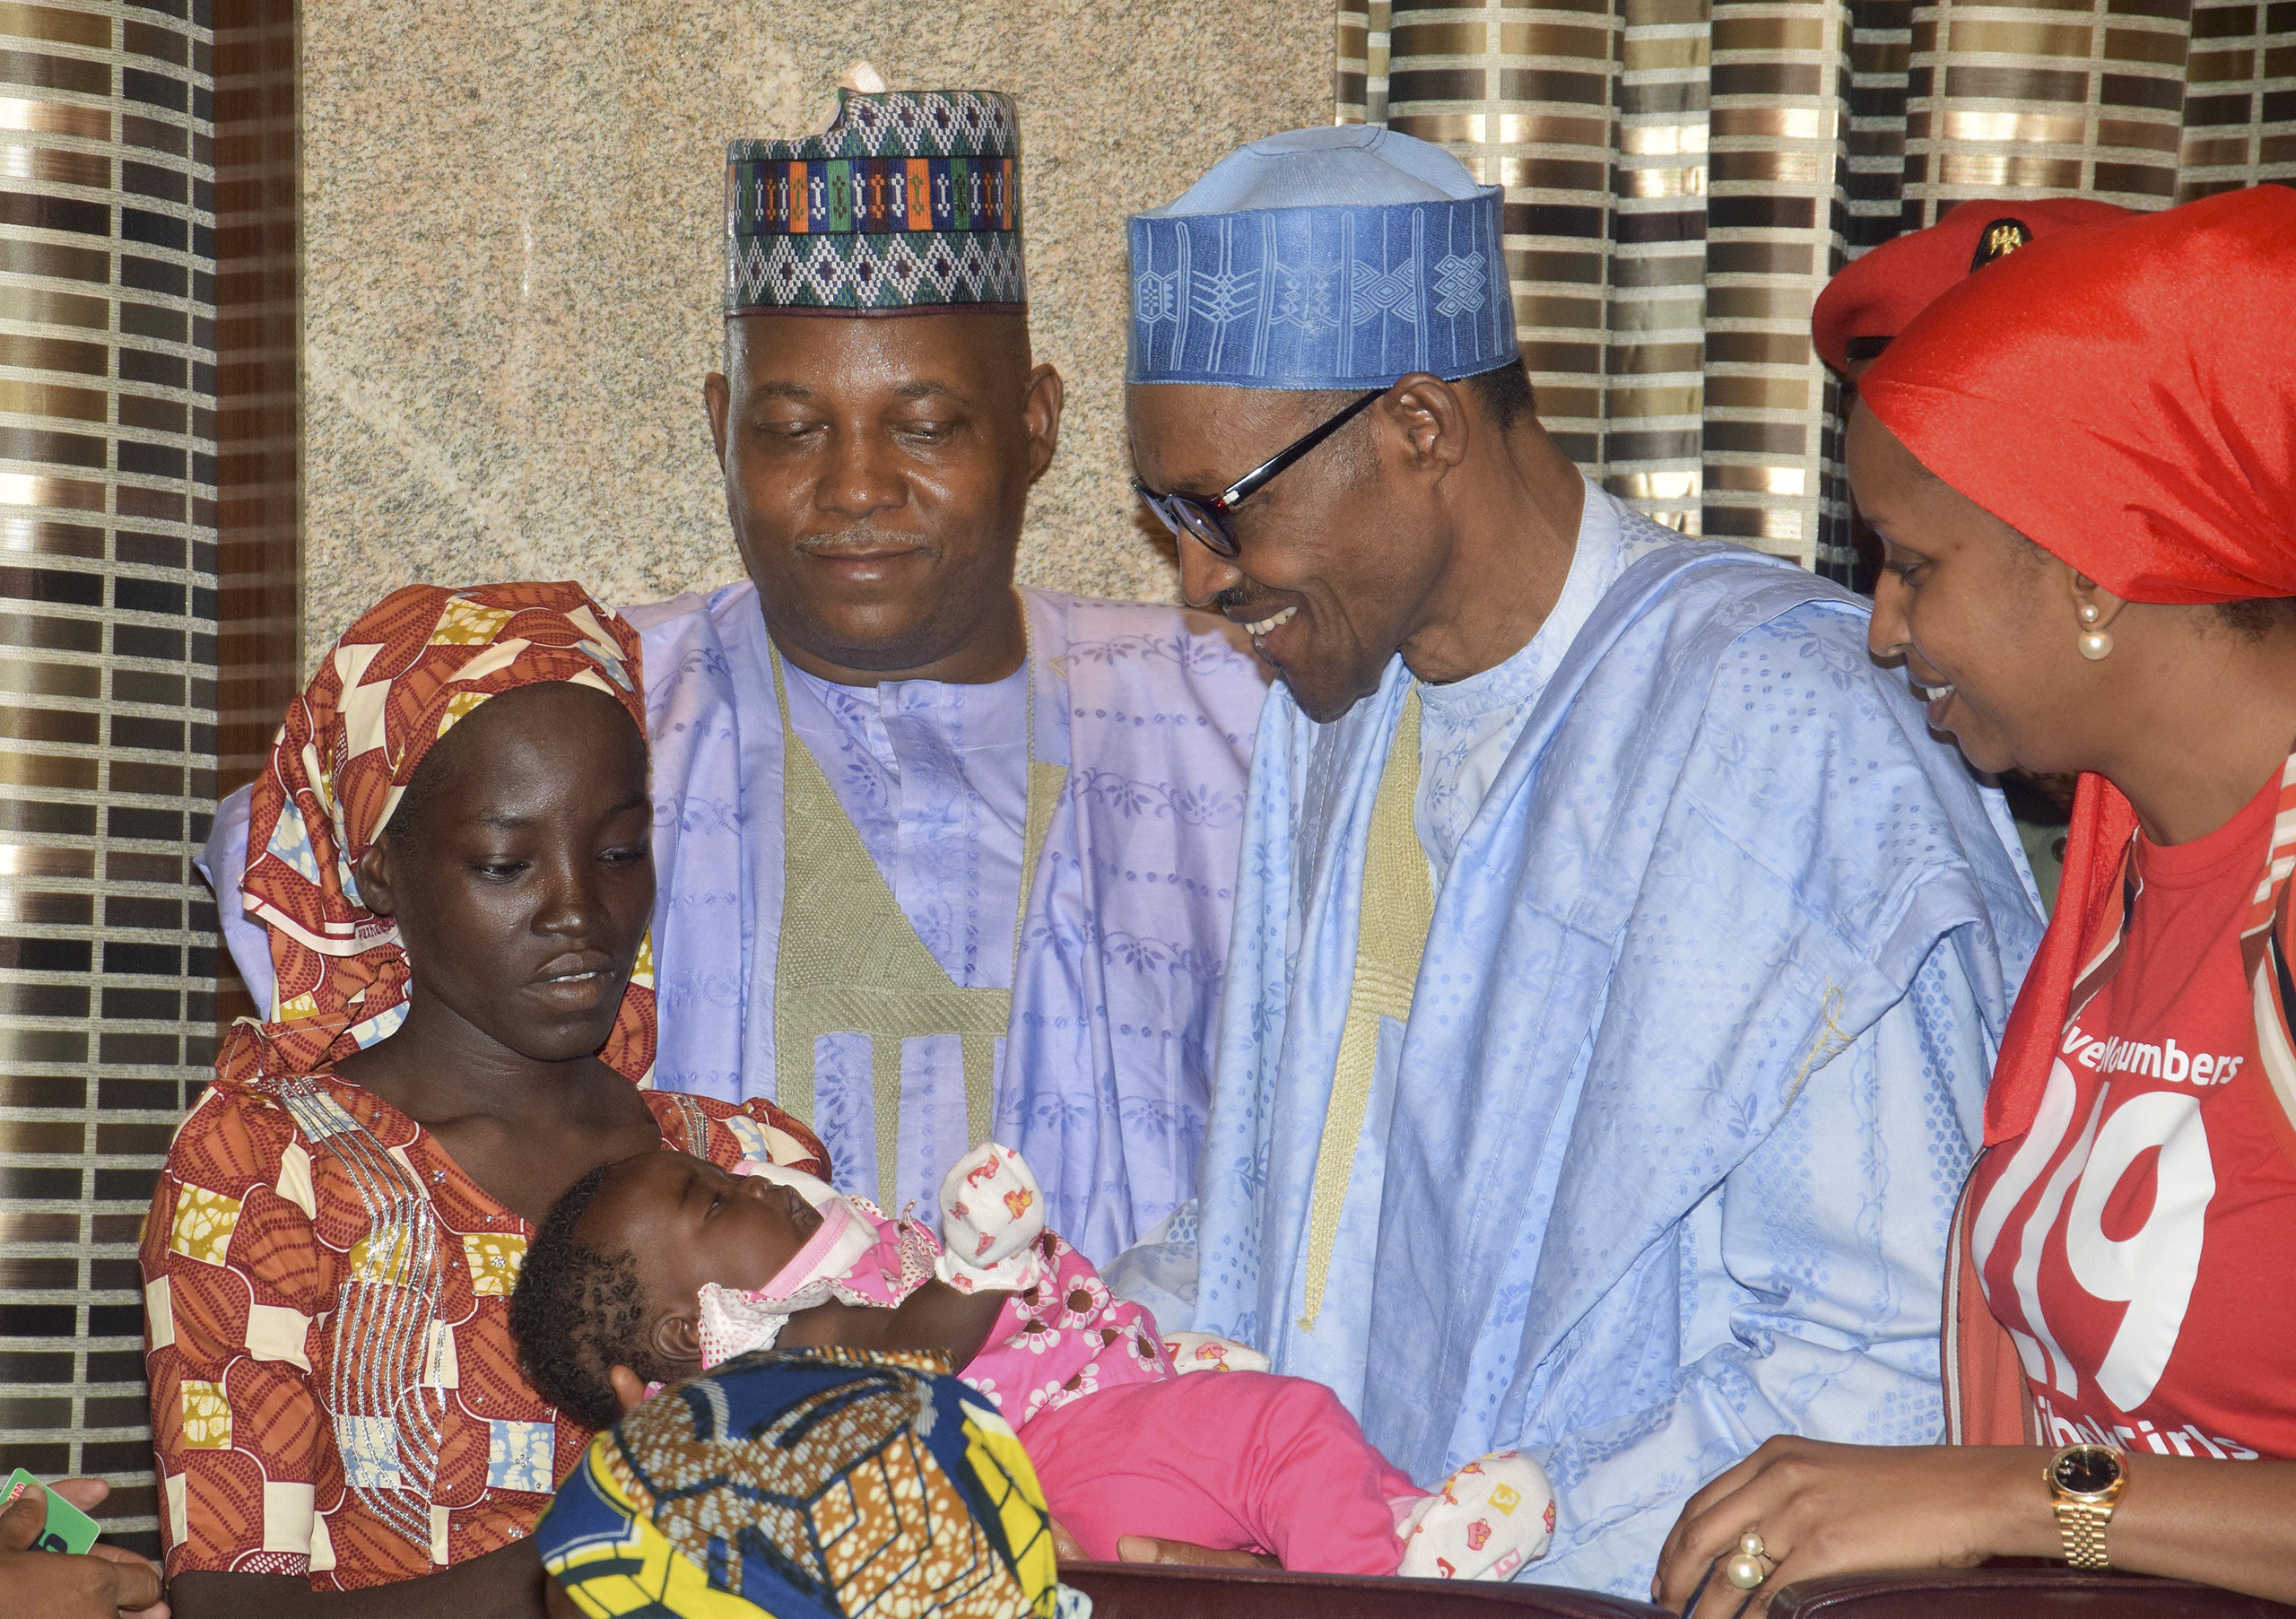 Nigerian President Muhammadu Buhari, second right, receives Amina Ali, the first rescued Chibok school girl, at the Presidential palace in Abuja, Nigeria, May. 19, 2016.